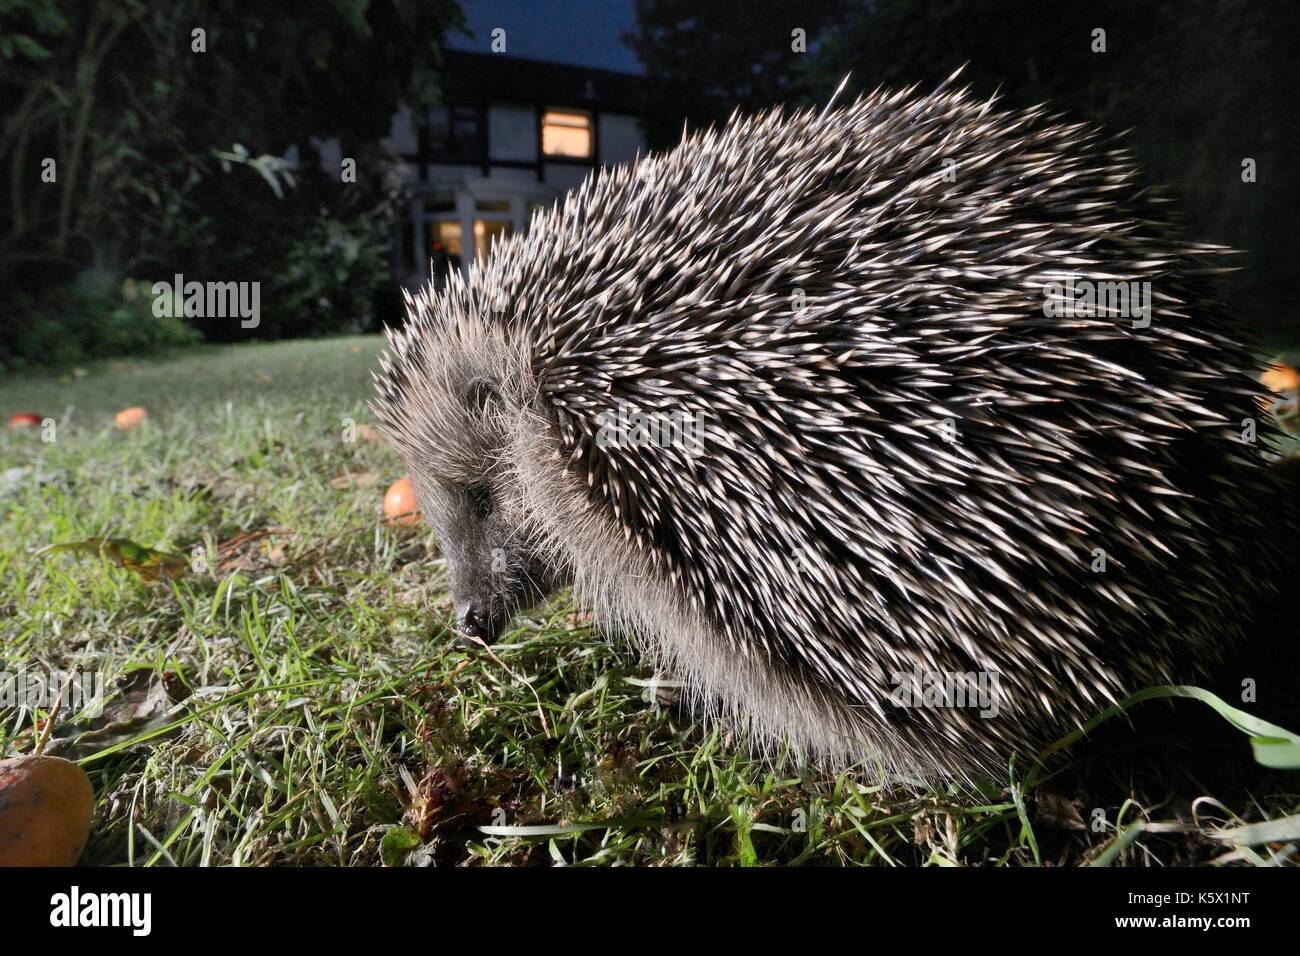 Hedgehog (Erinaceus europaeus) foraging on a lawn in a suburban garden at night, Chippenham, Wiltshire, UK, September.  Taken with a remote camera. - Stock Image